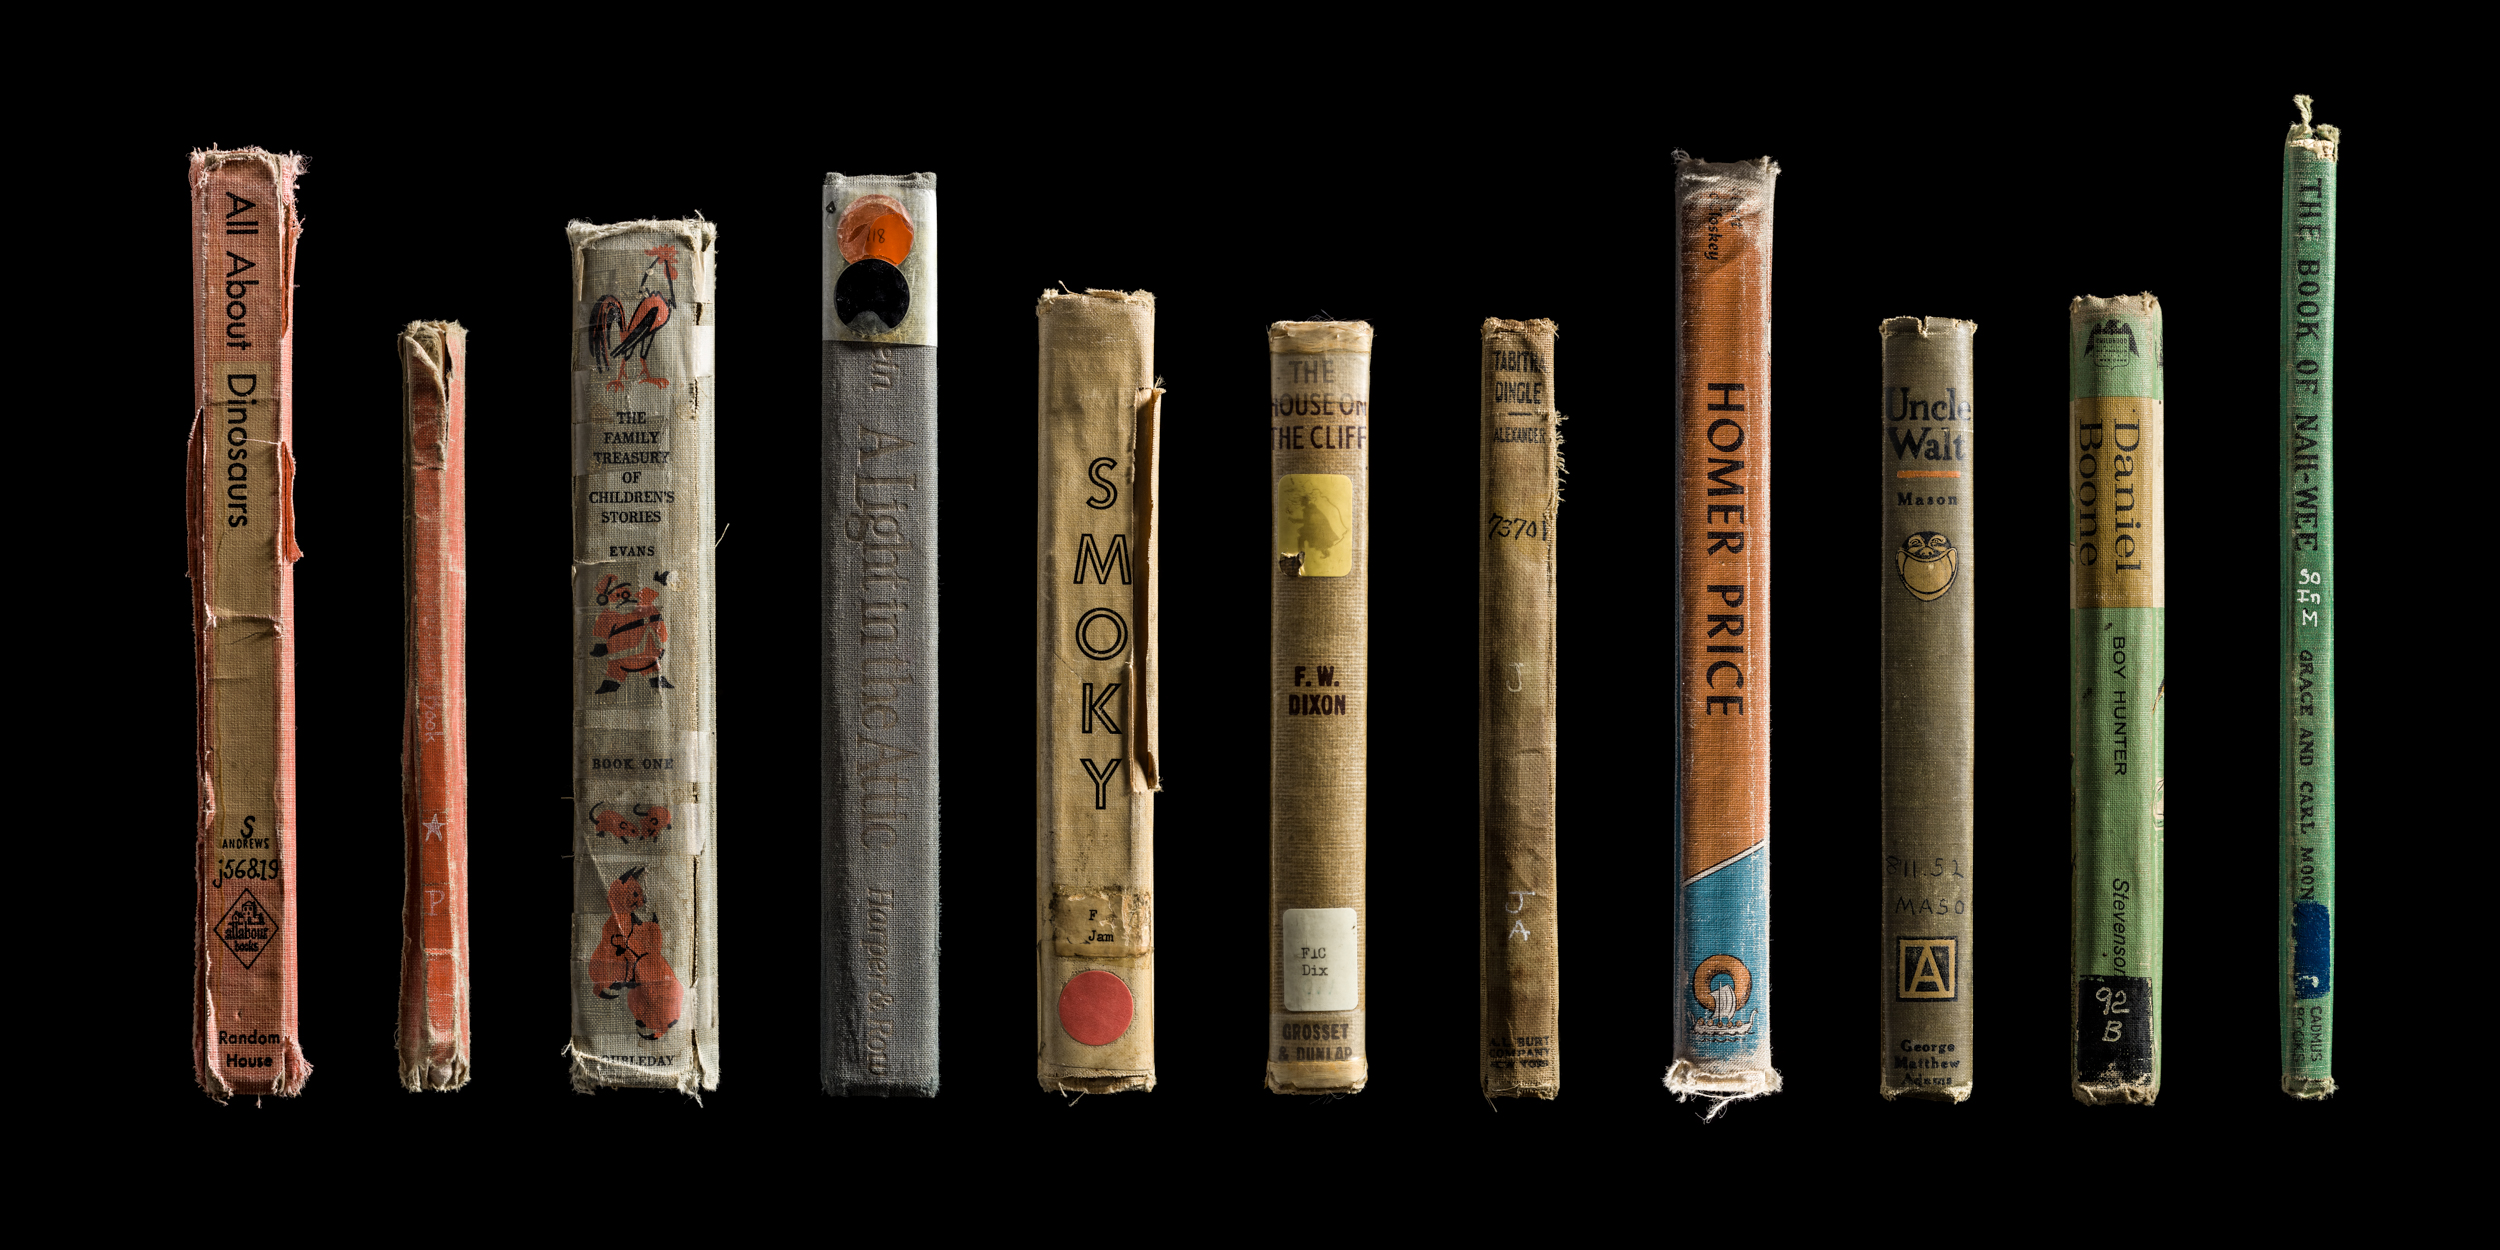 Mansfield_Expired_Spines_01.jpg